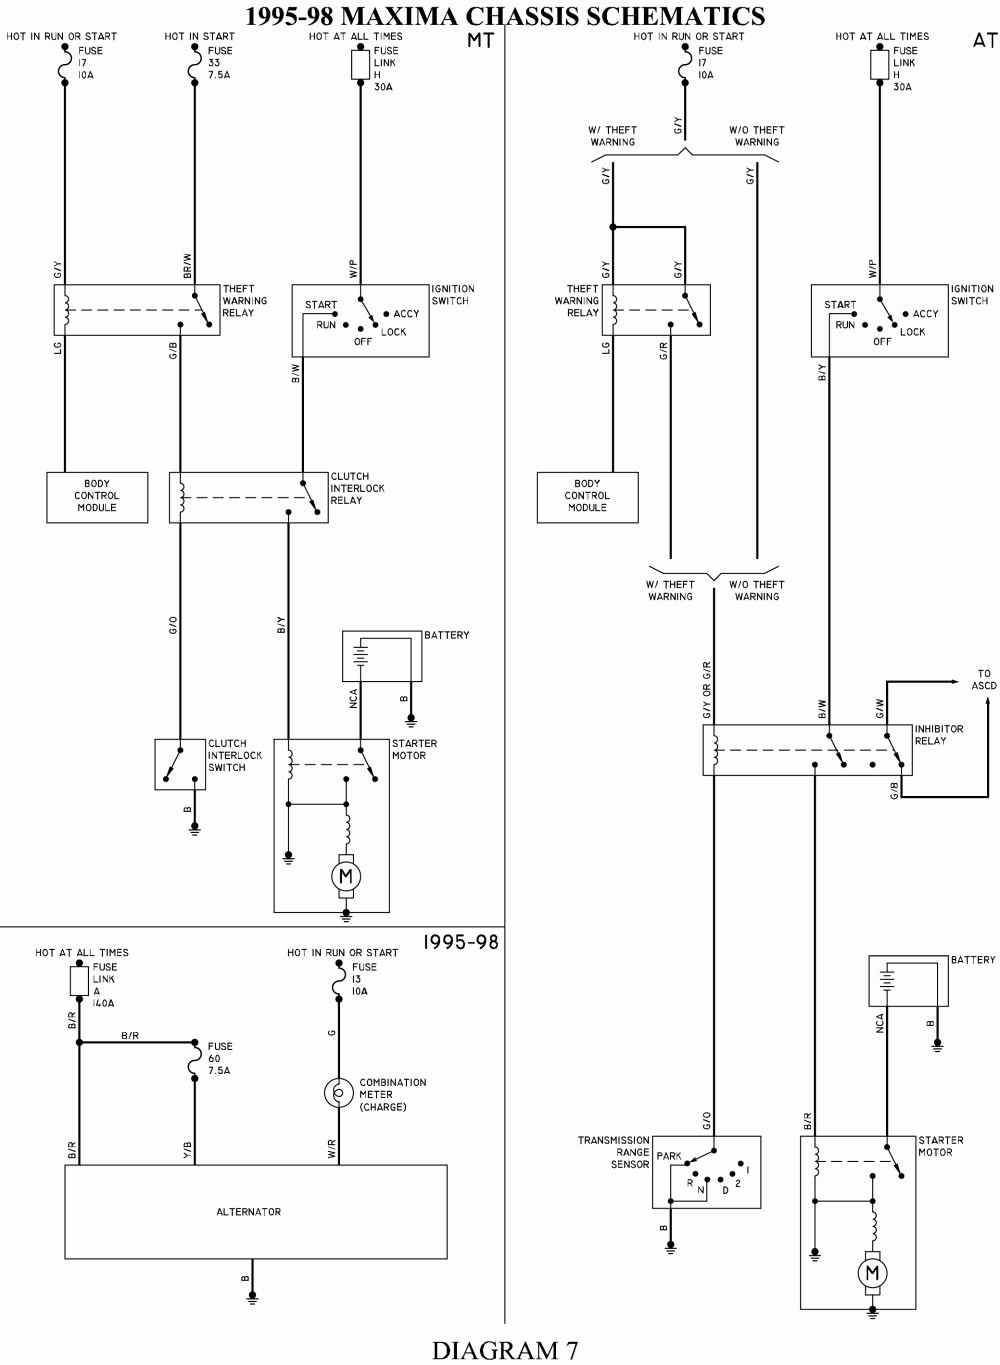 Full Size of Wiring Diagram Taylor Dunn Wiring Diagram New Great Simple Engine Diagram Electrical